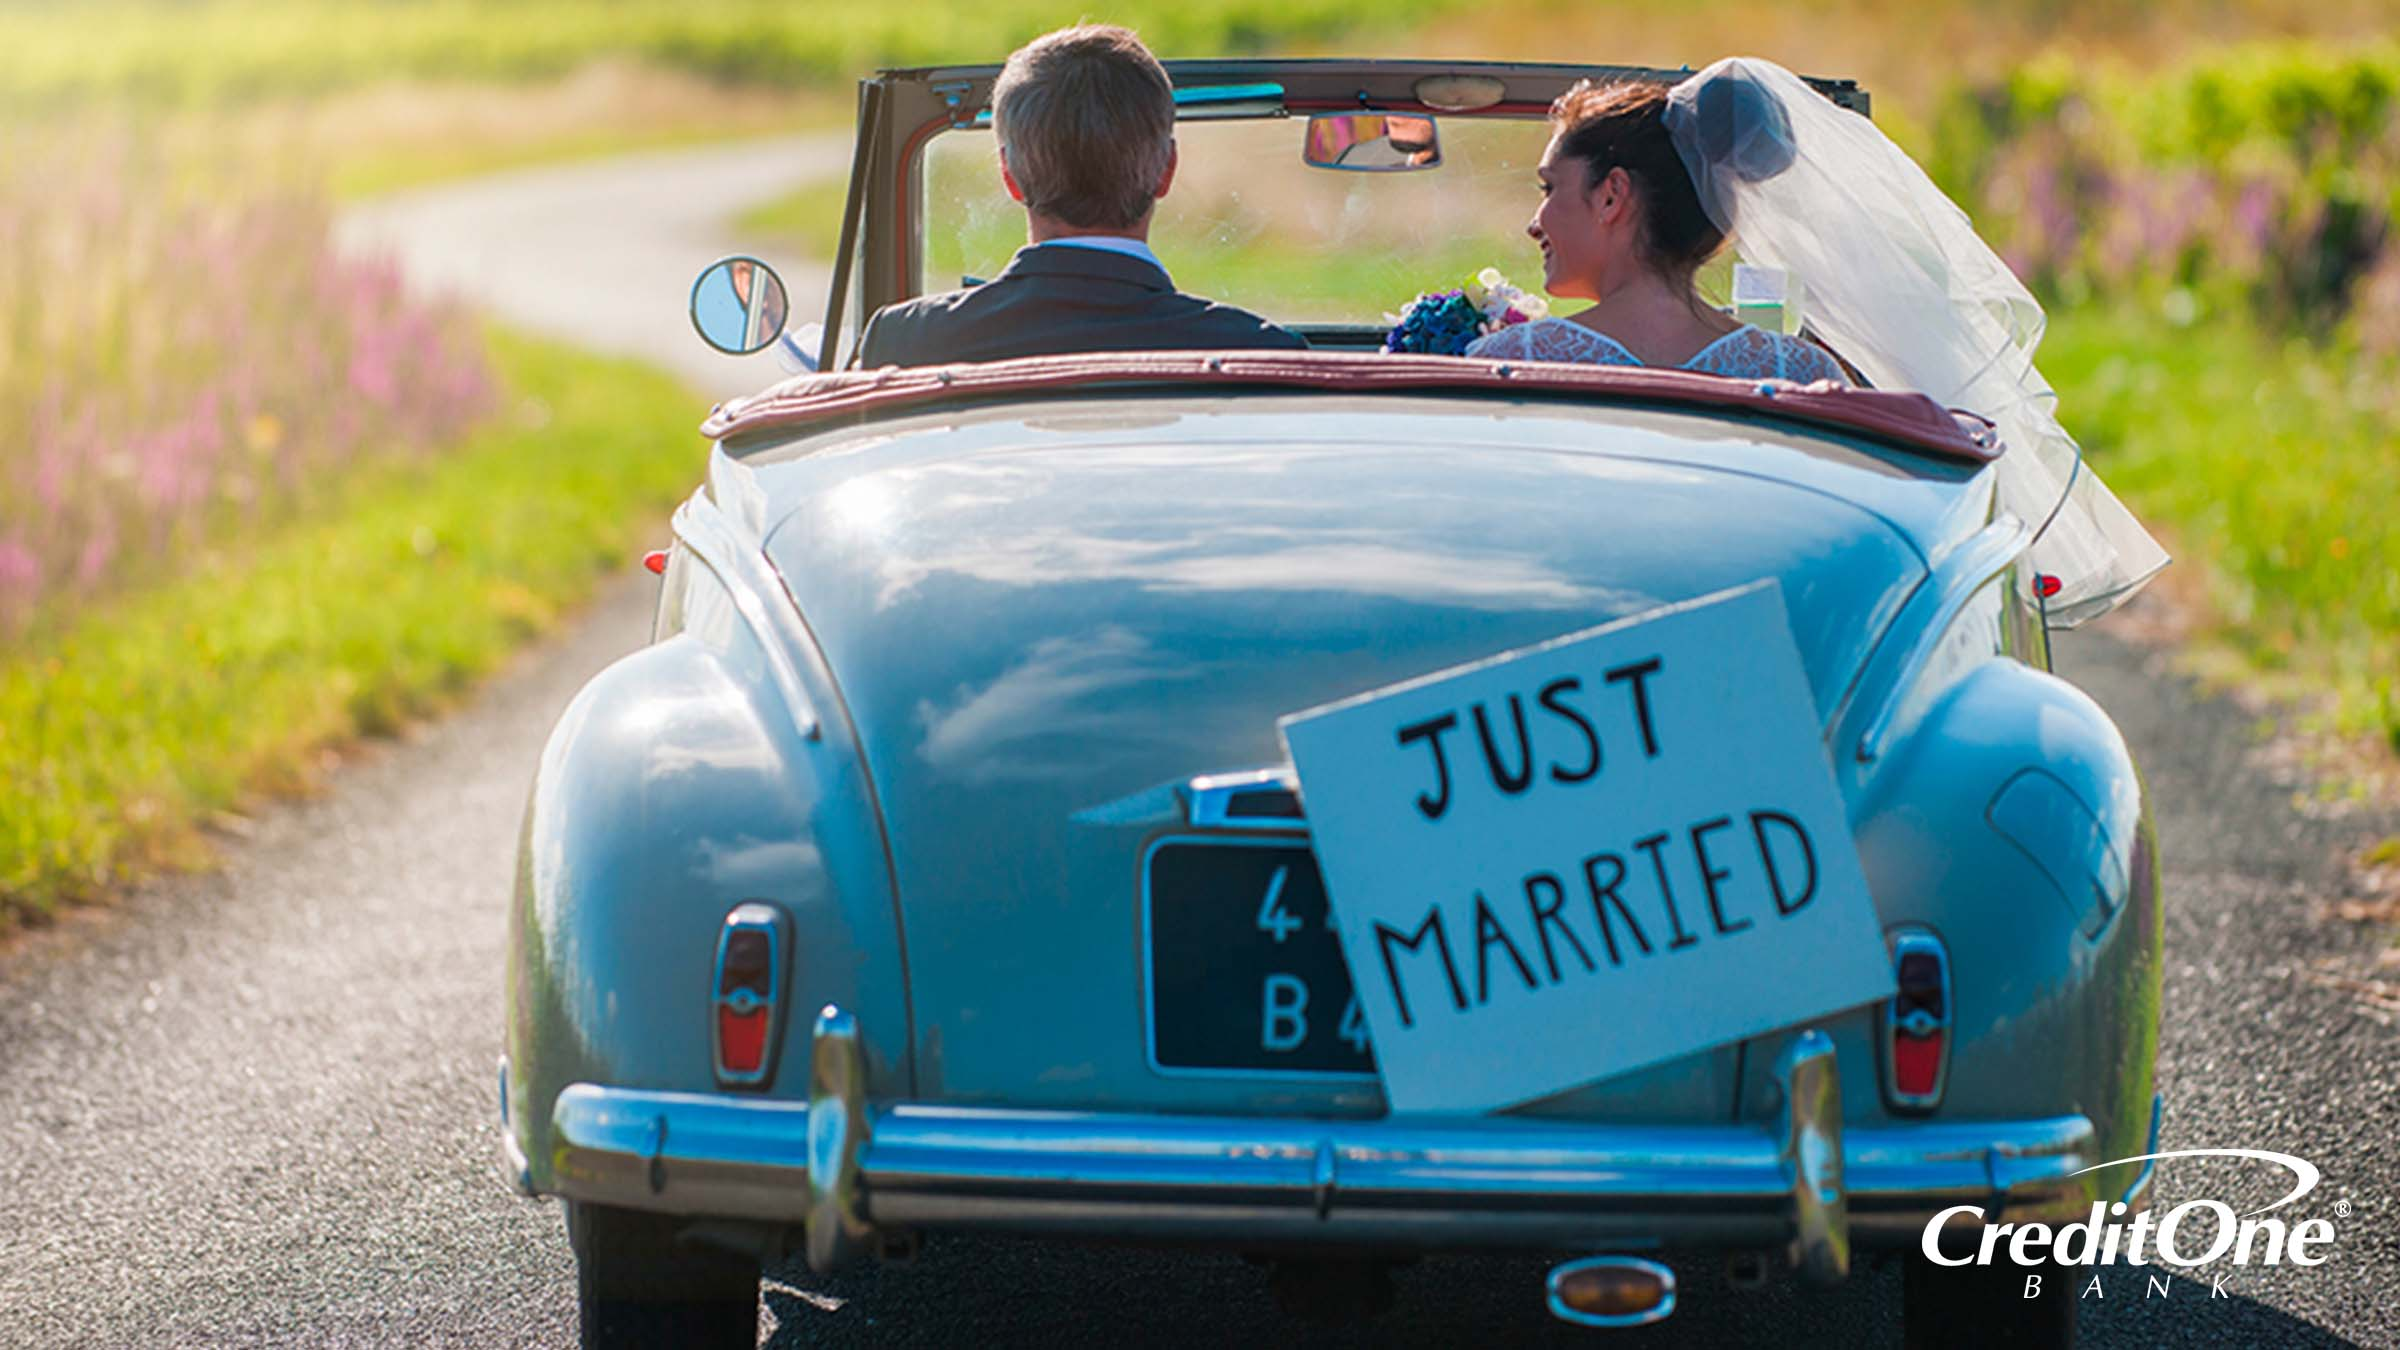 A newly married couple driving away together with a 'Just Married' sign